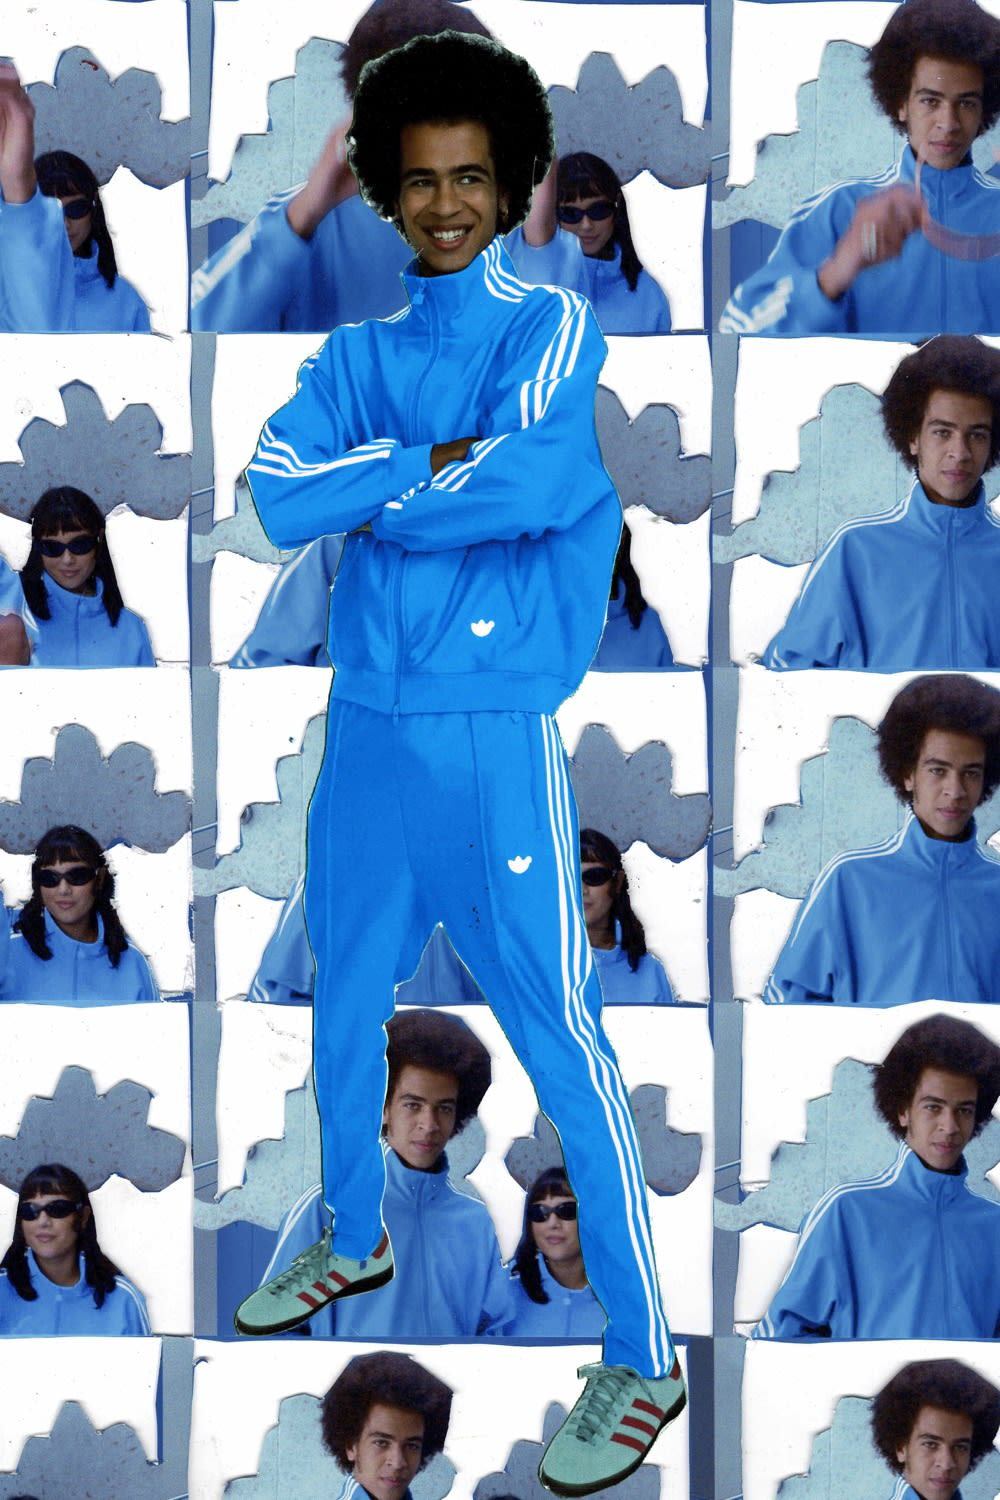 adidas Blue Version look book with Athen Kardashian and Toby Cato for END.